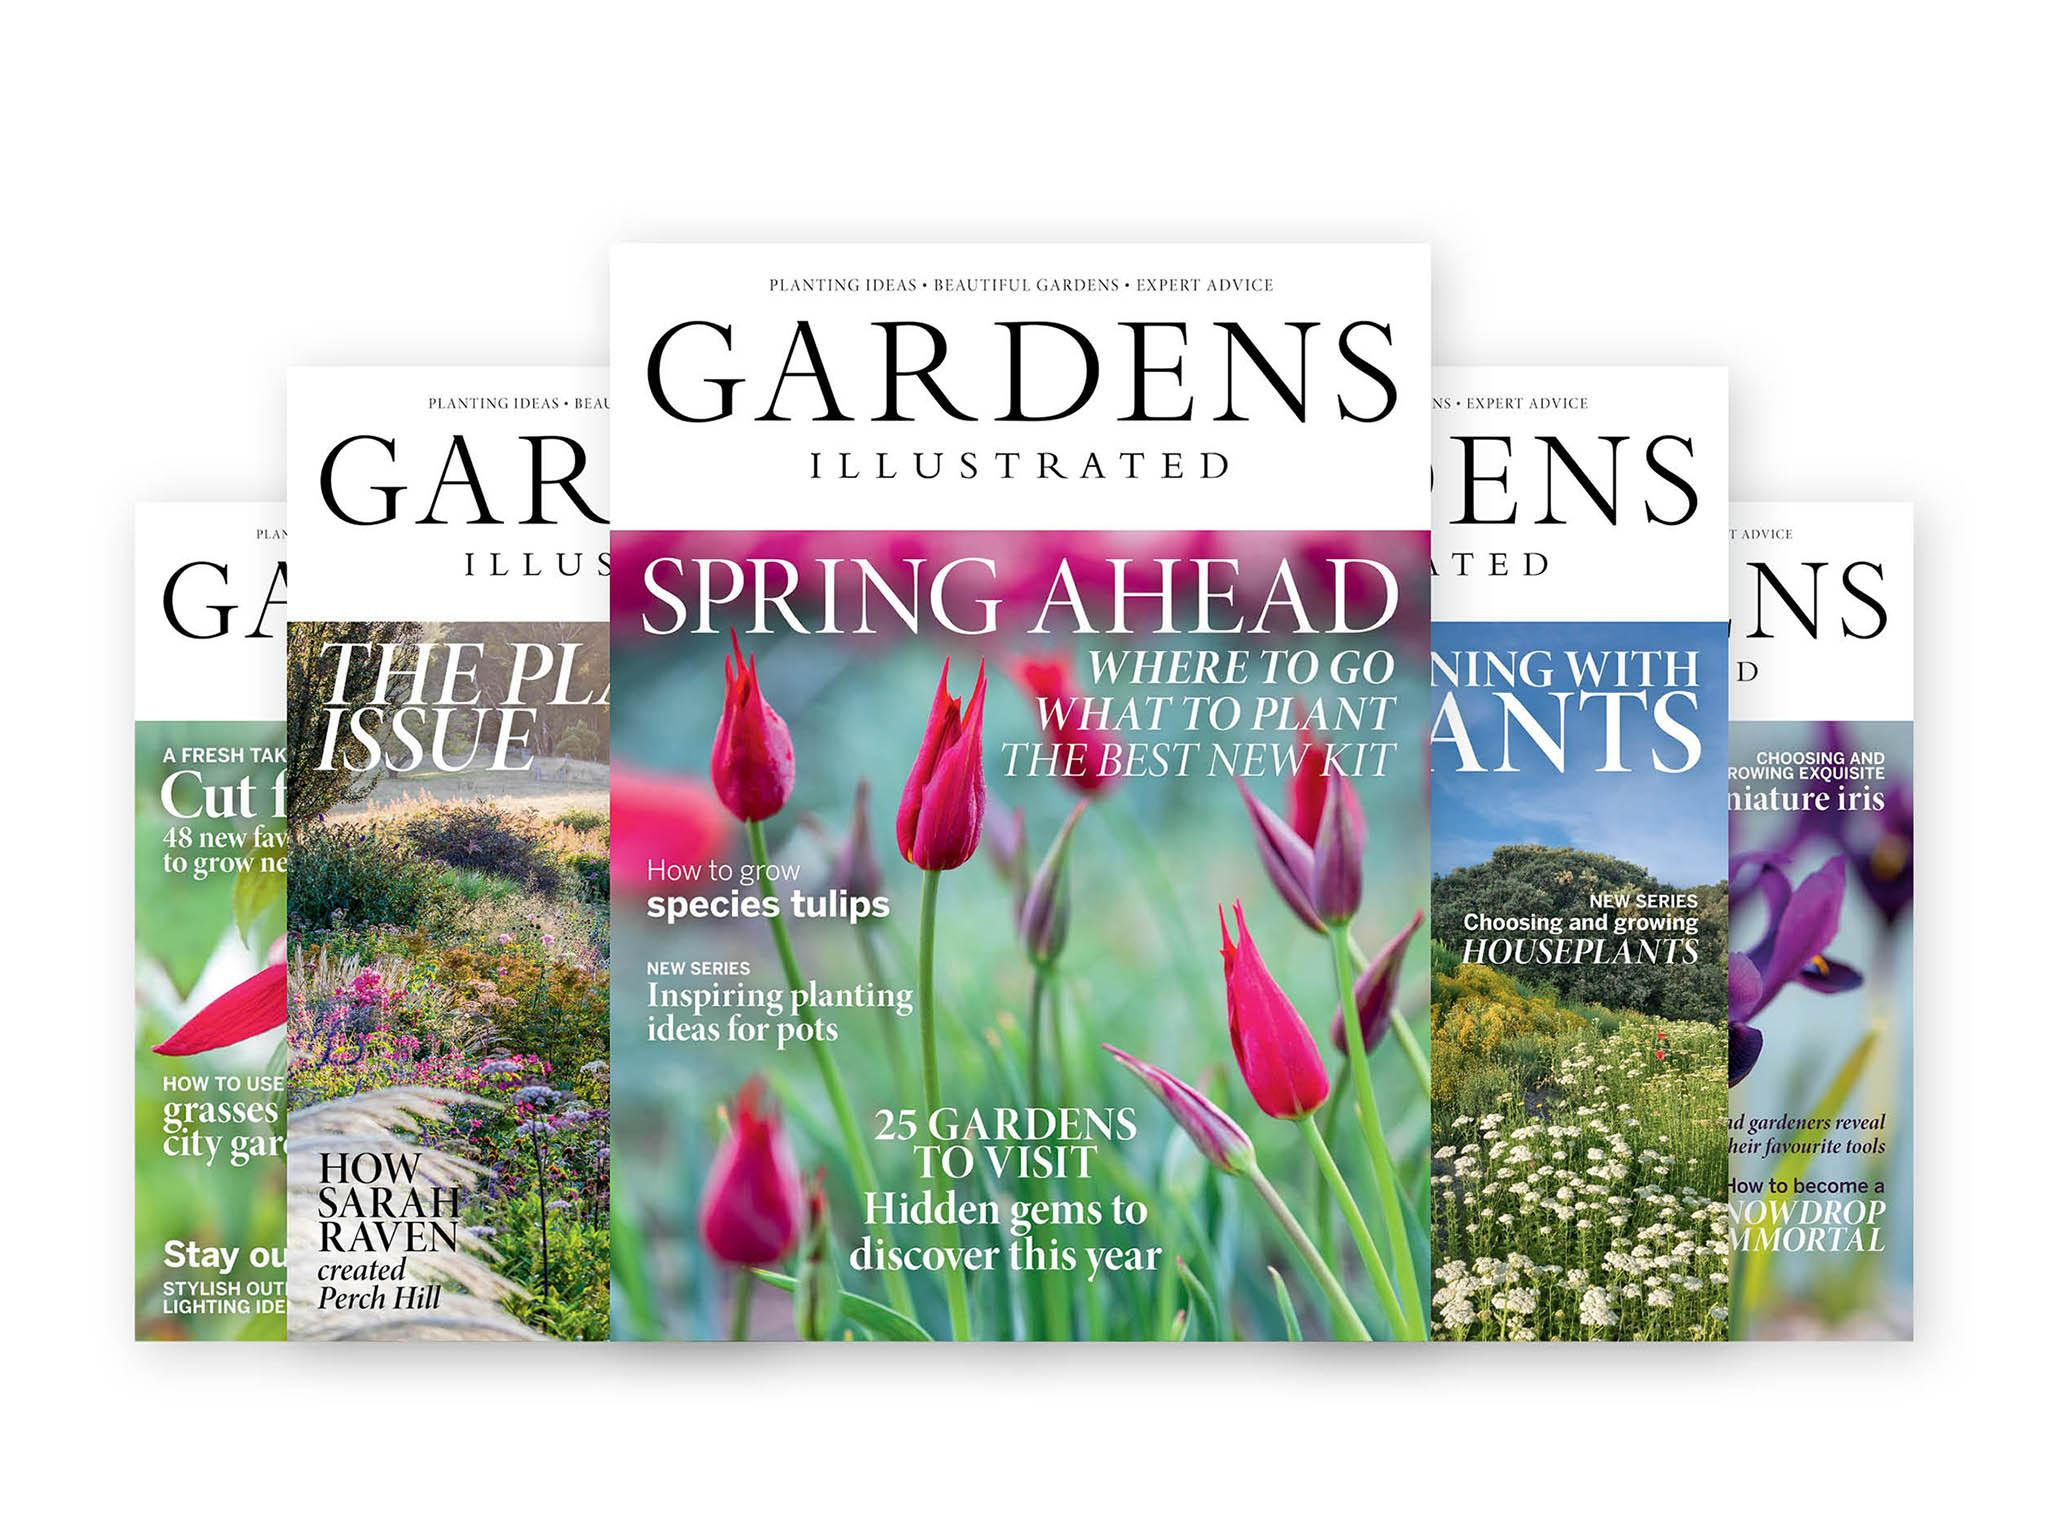 Gardens Illustrated Magazine GBP1650 For Six Issues Buysubscriptions